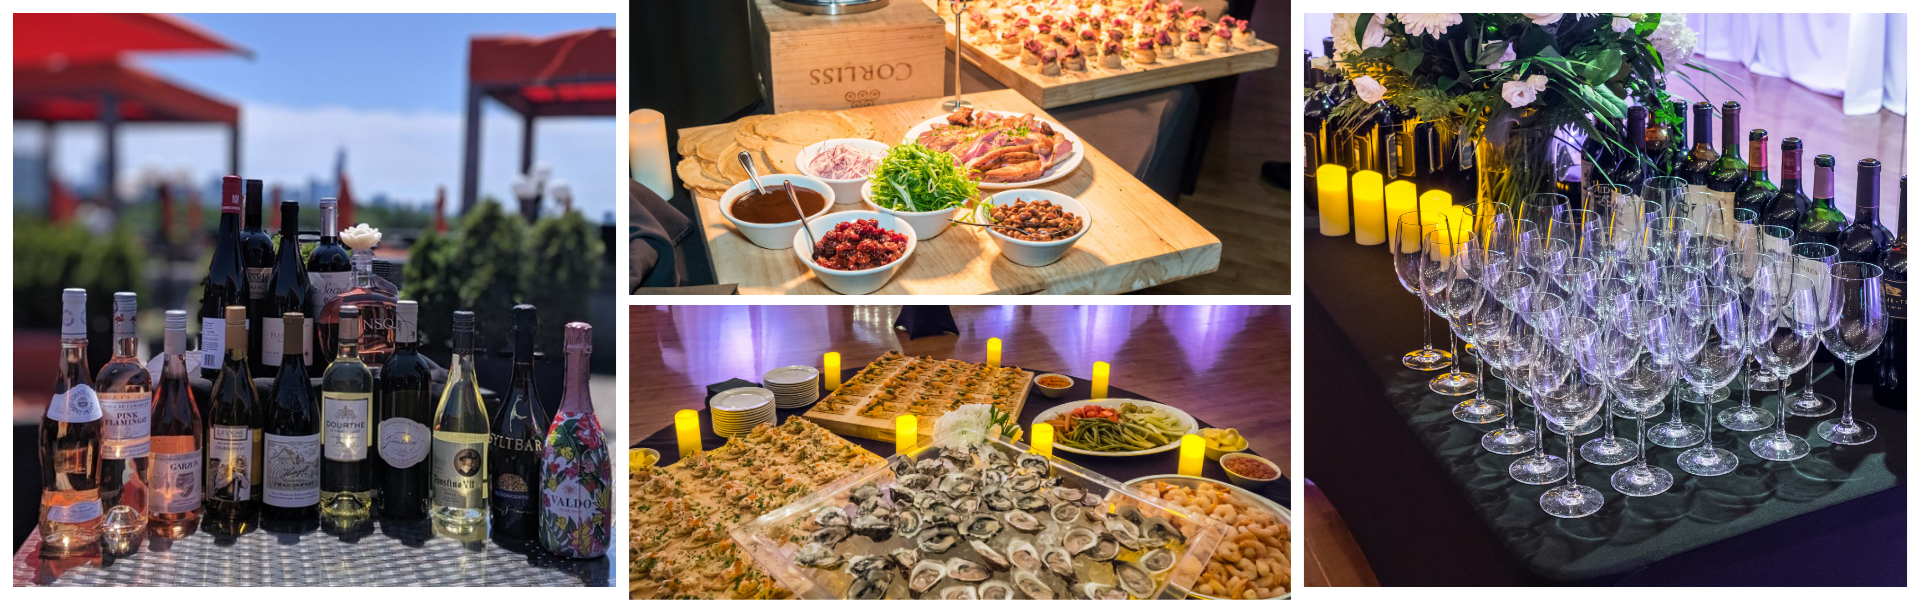 Lincoln Park Event Venue Catering Menus Bar Service